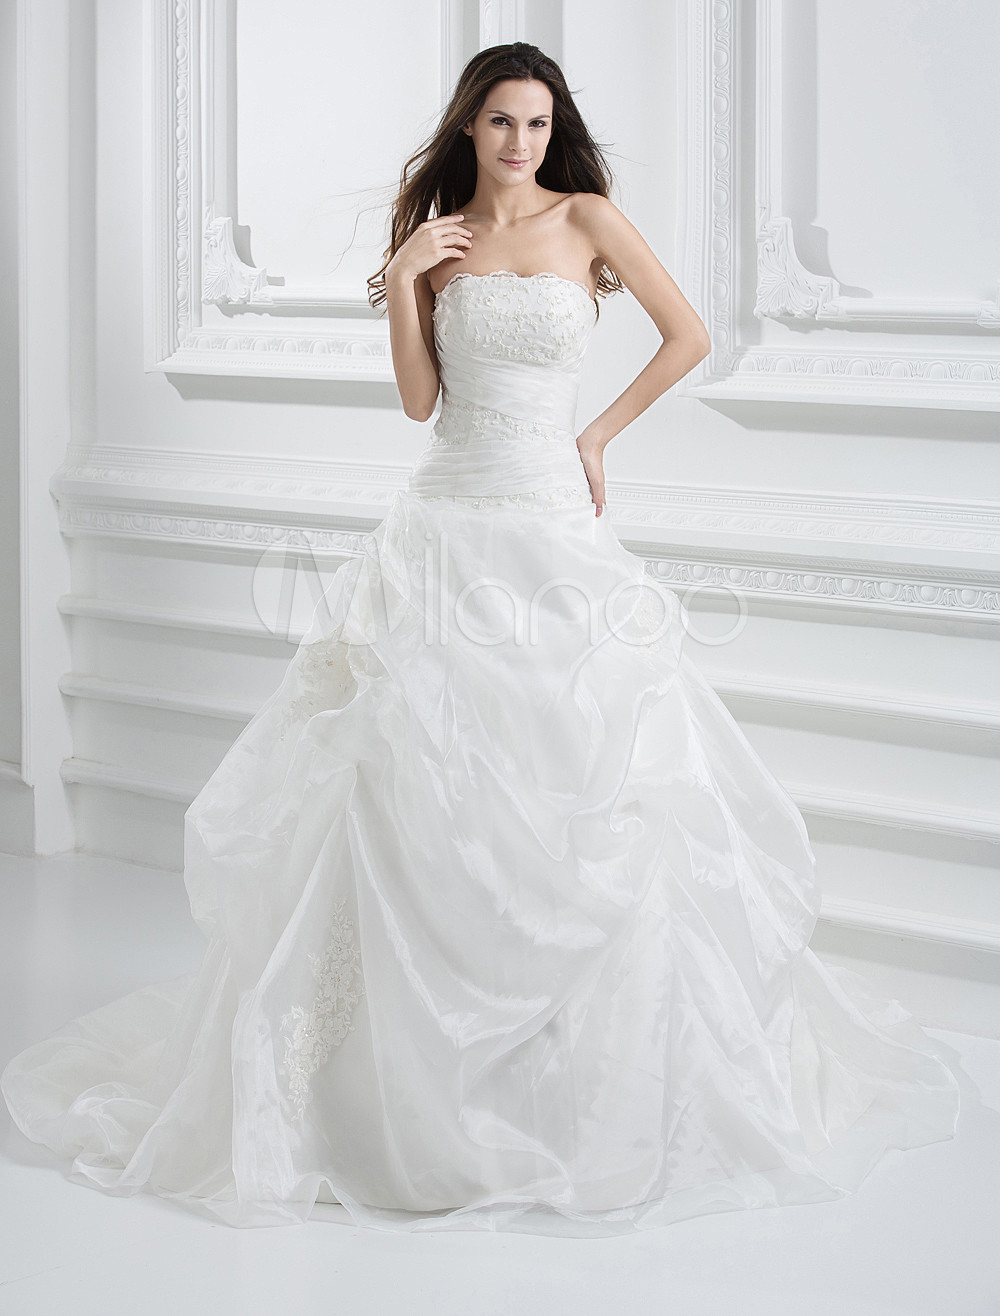 Euro Style Ball Gown Strapless Applique Beading Organza Wedding Dress